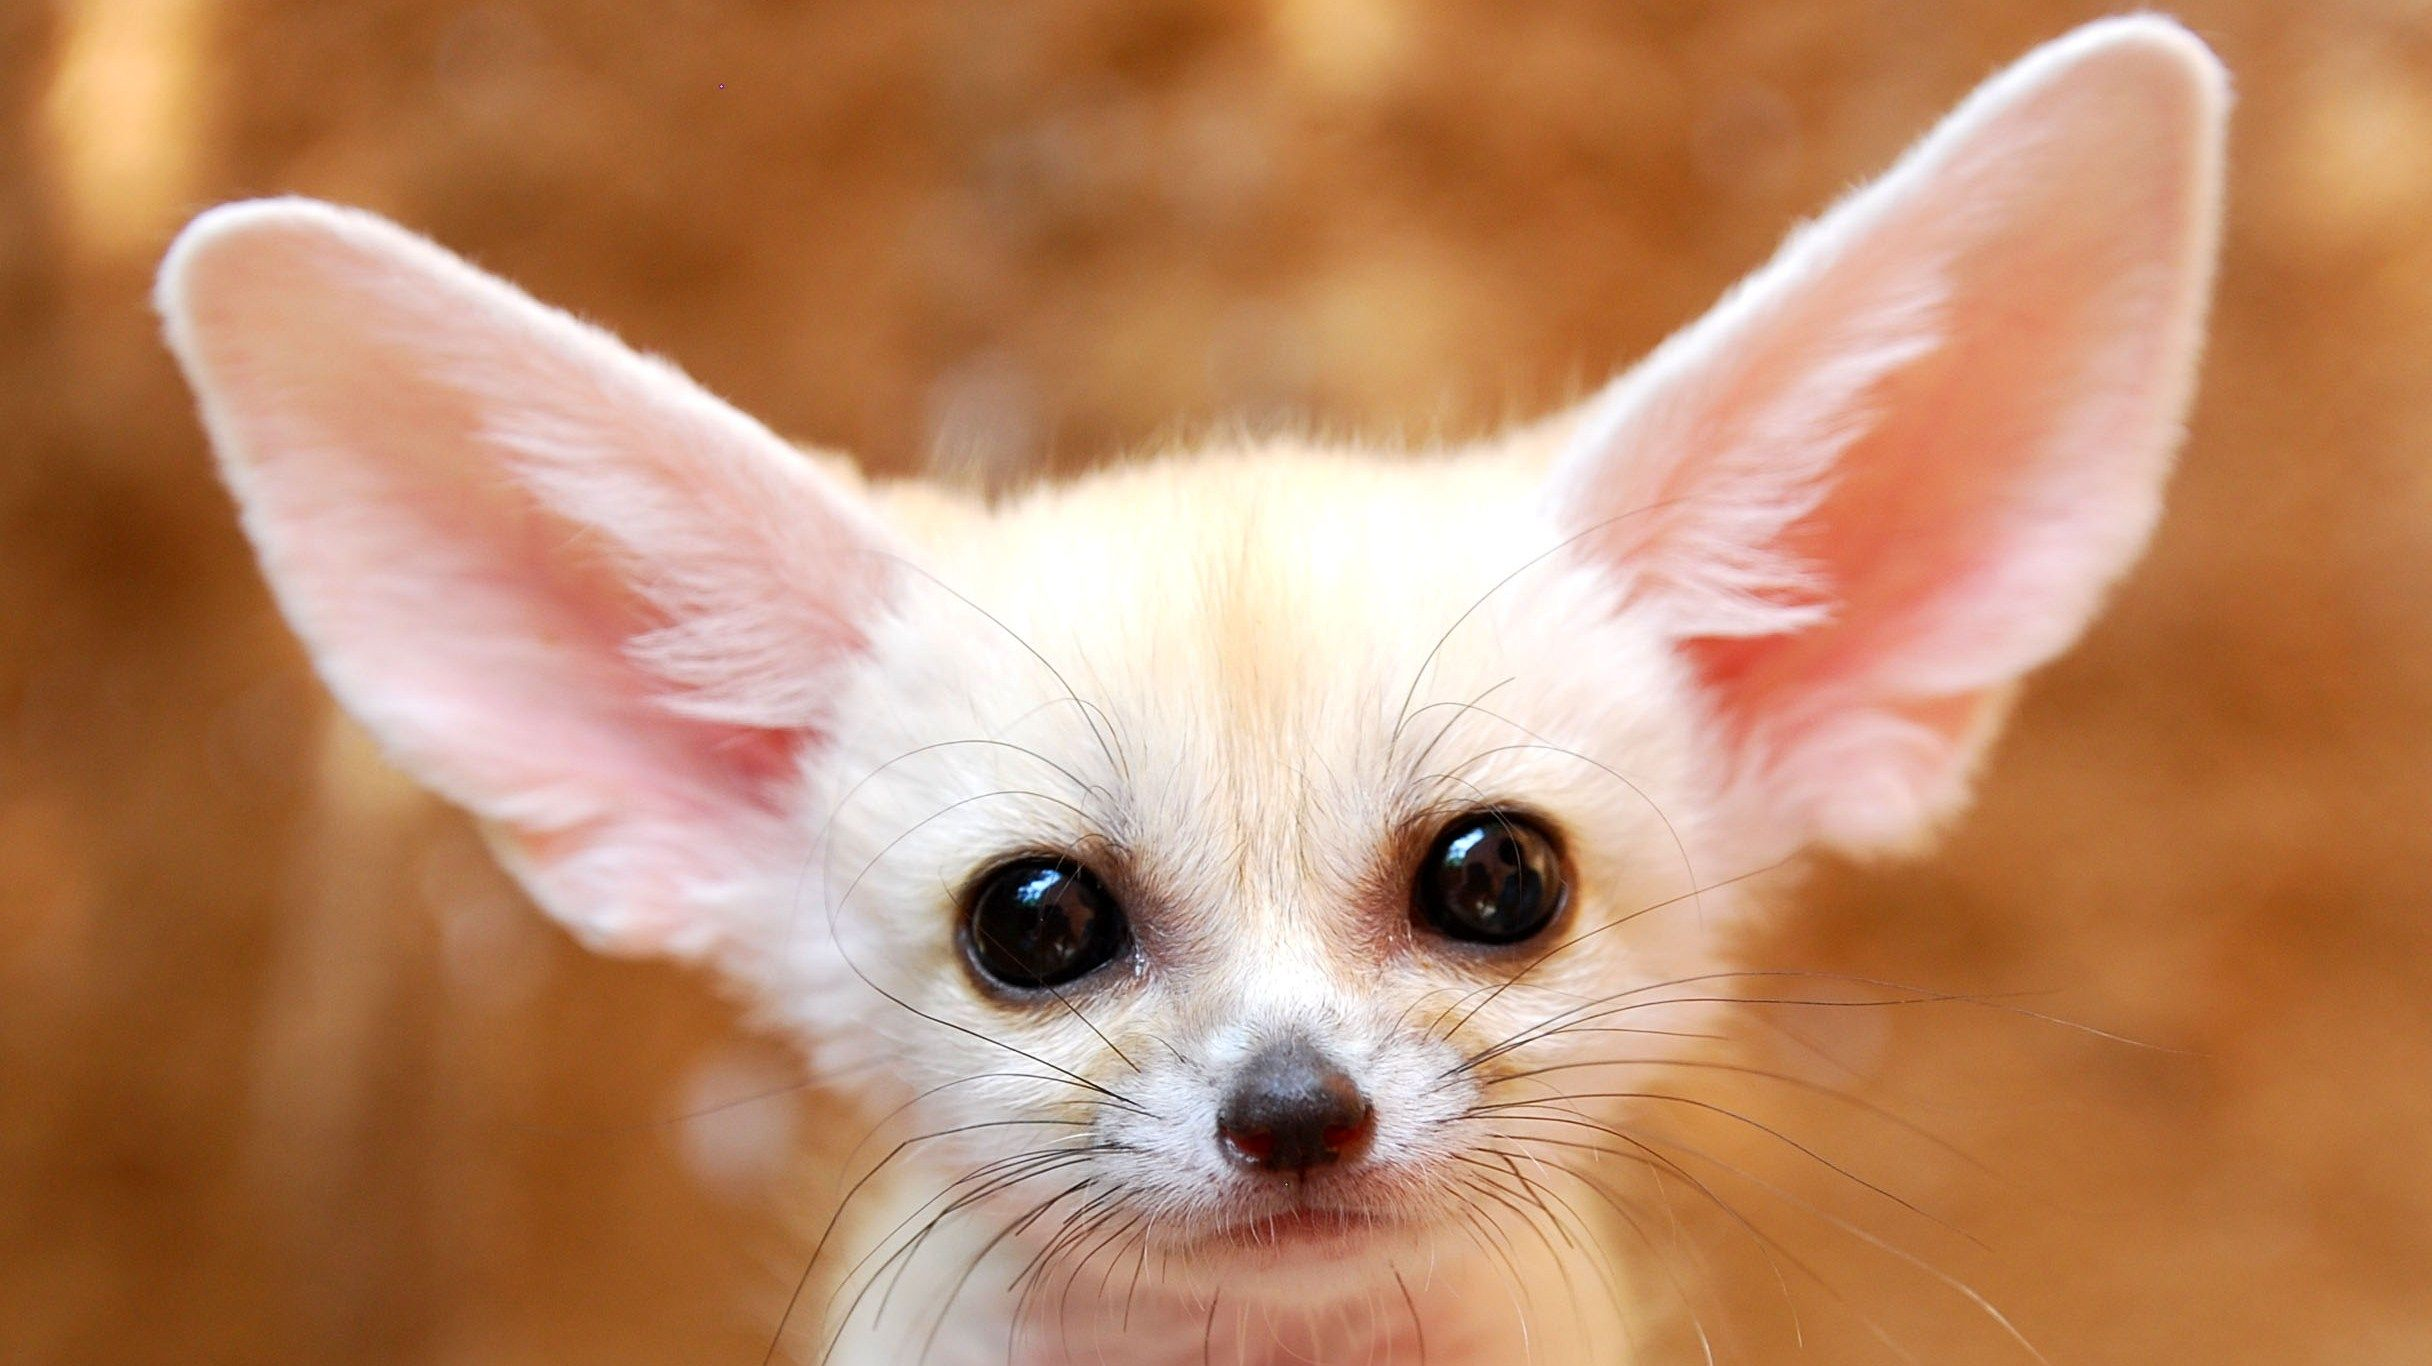 White Baby Fennec Fox - wallpaper.